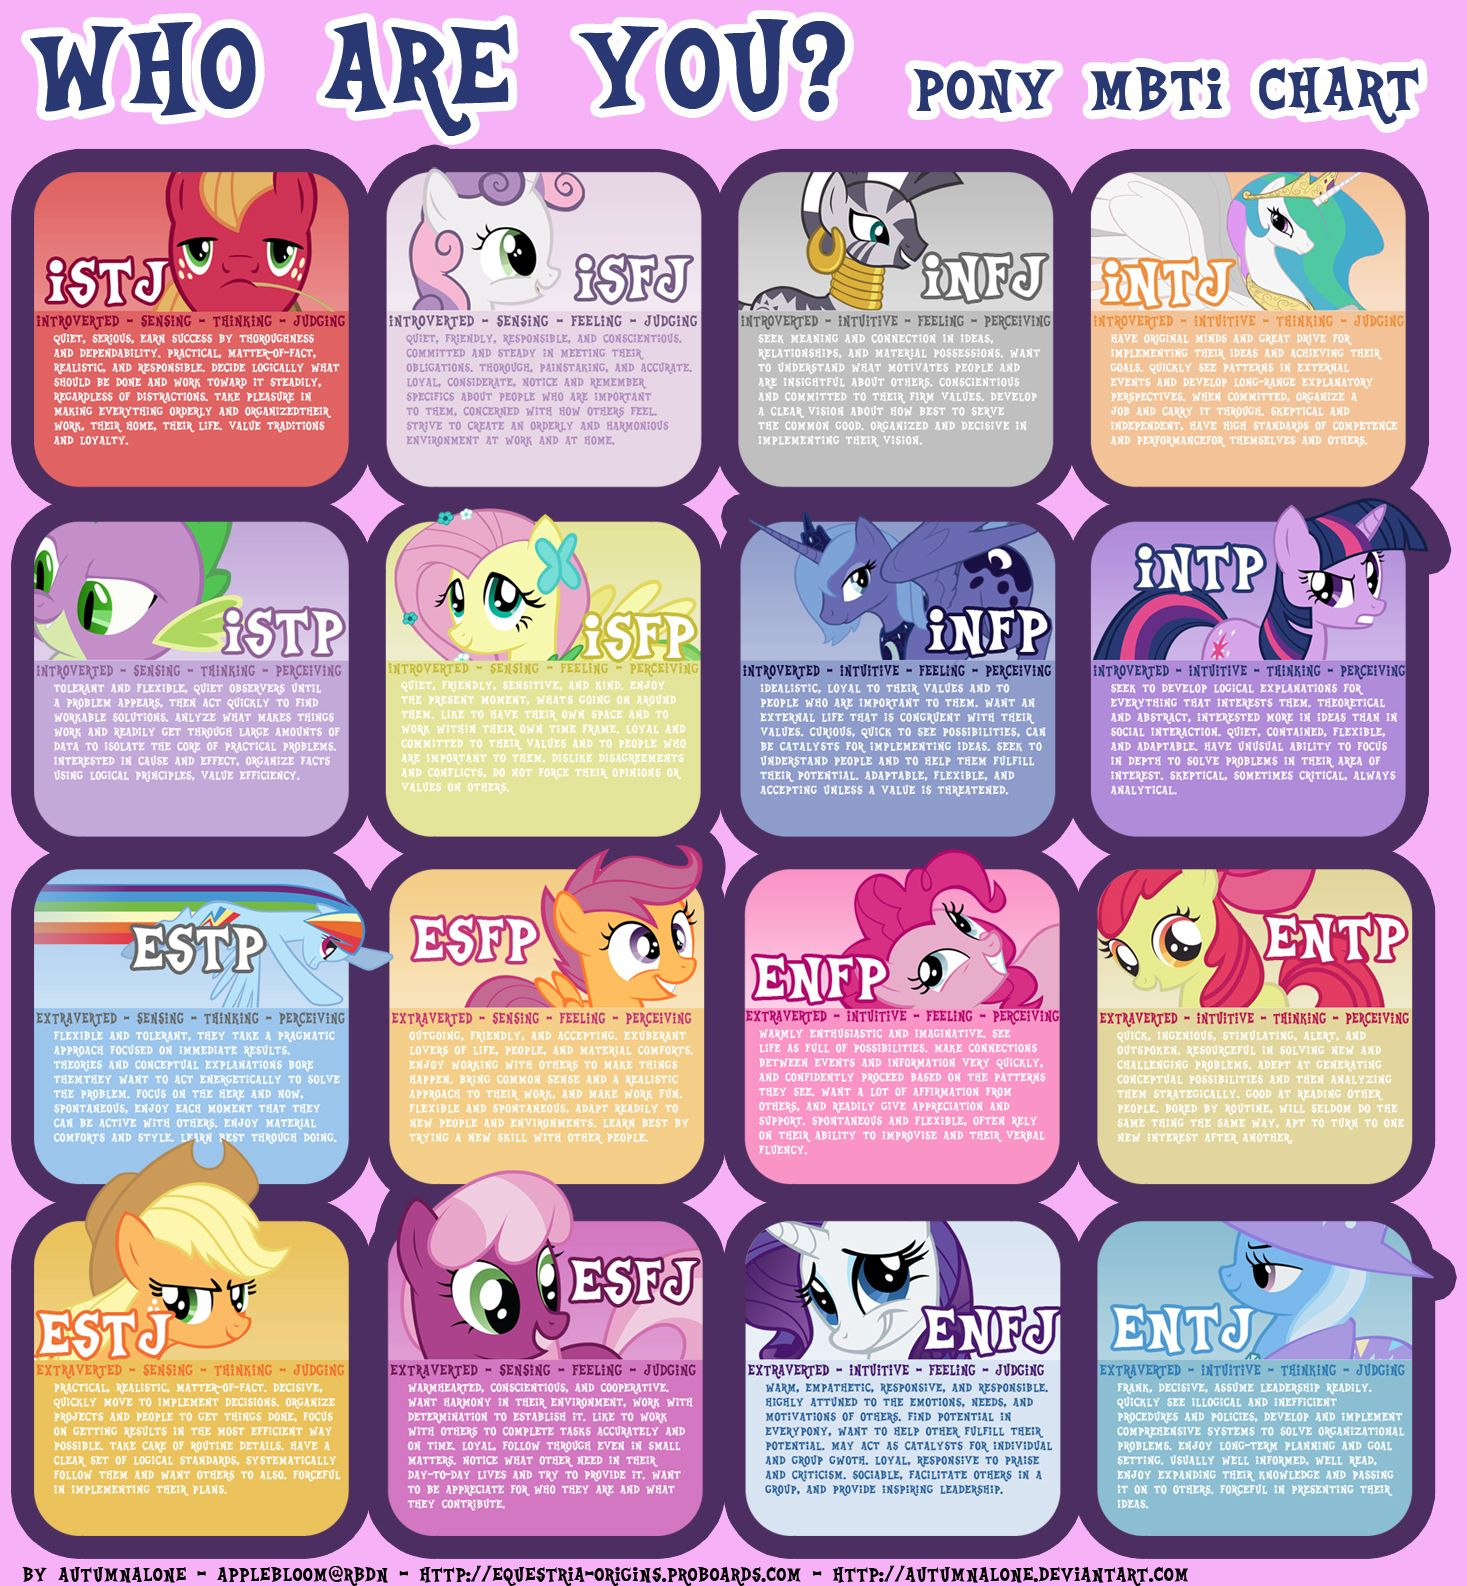 Hasbro themselves have a My Little Pony Personality Quiz available